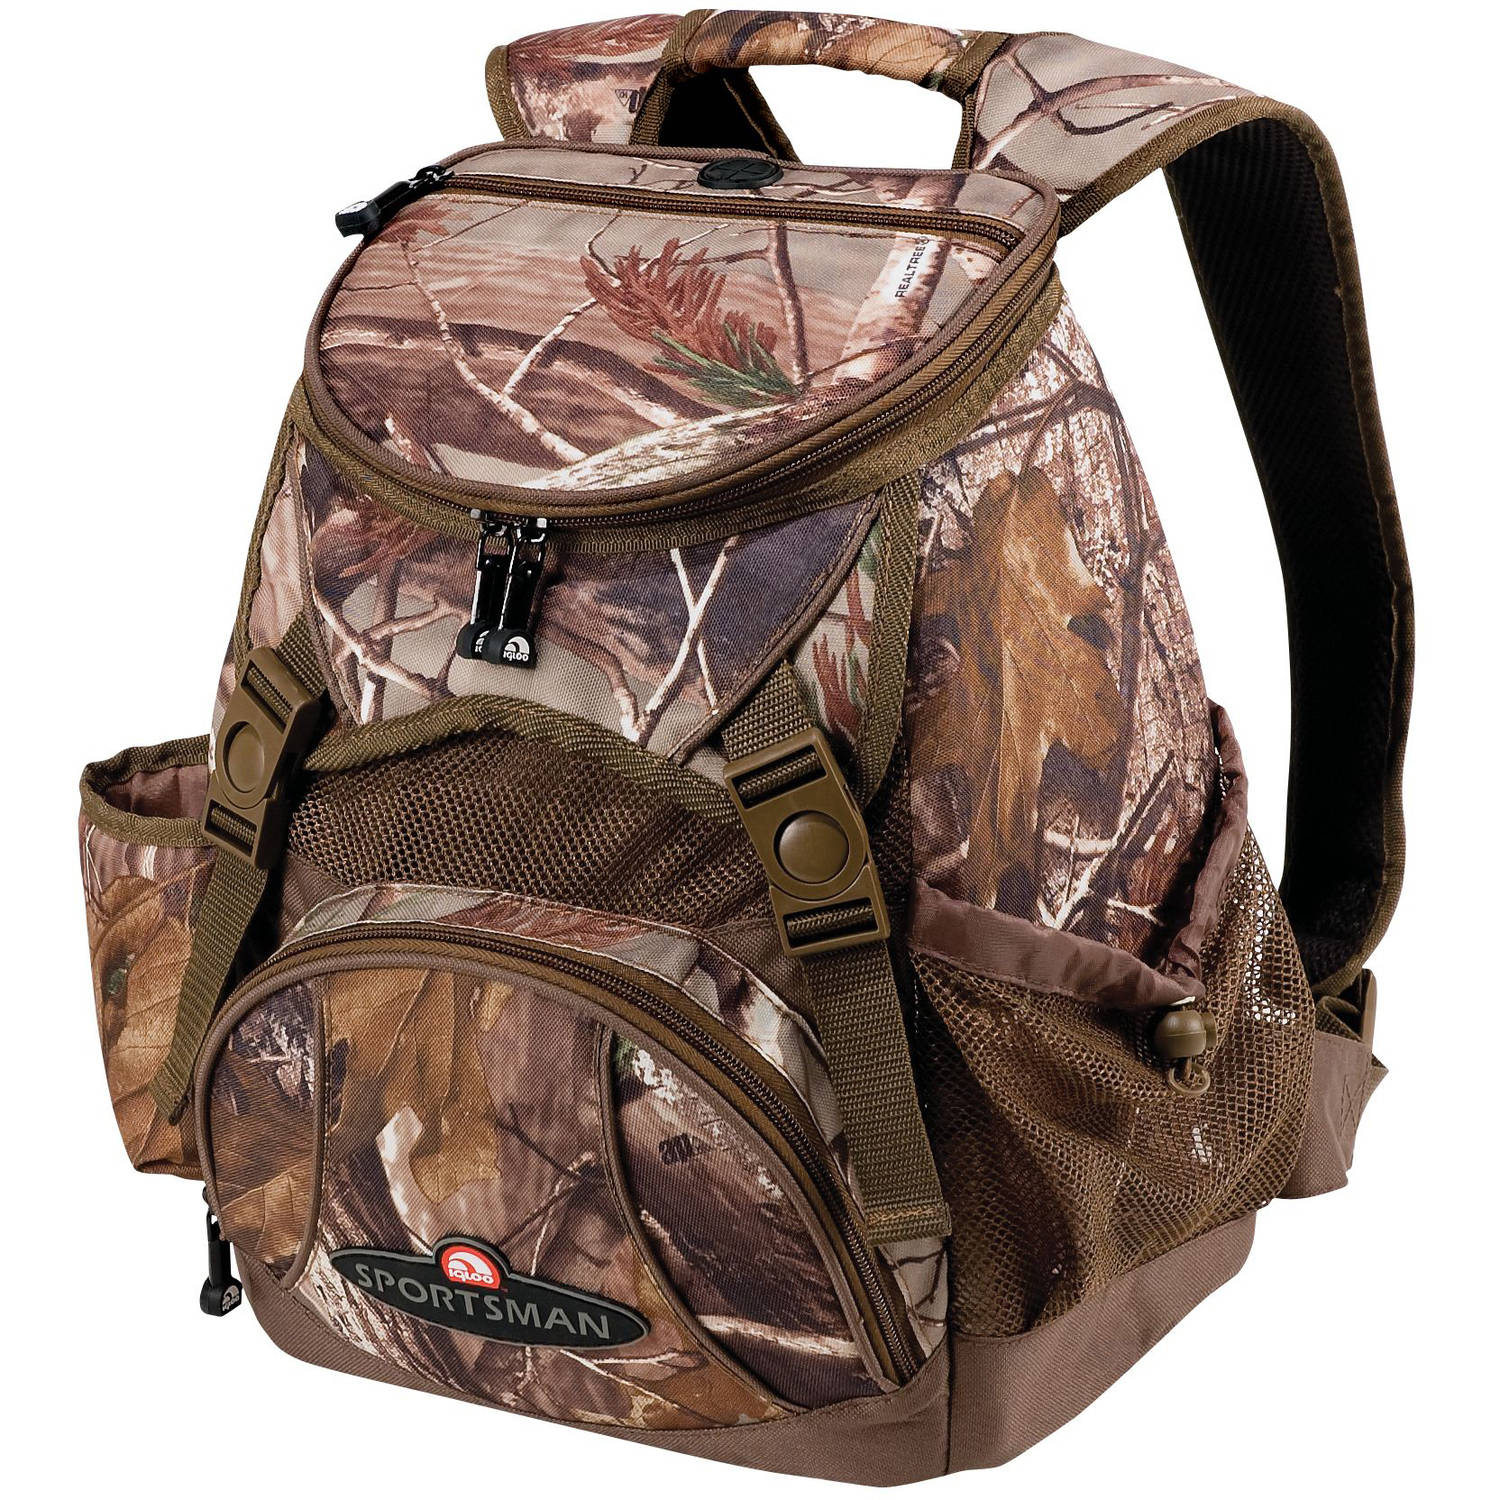 Igloo Realtree Backpack, Camo